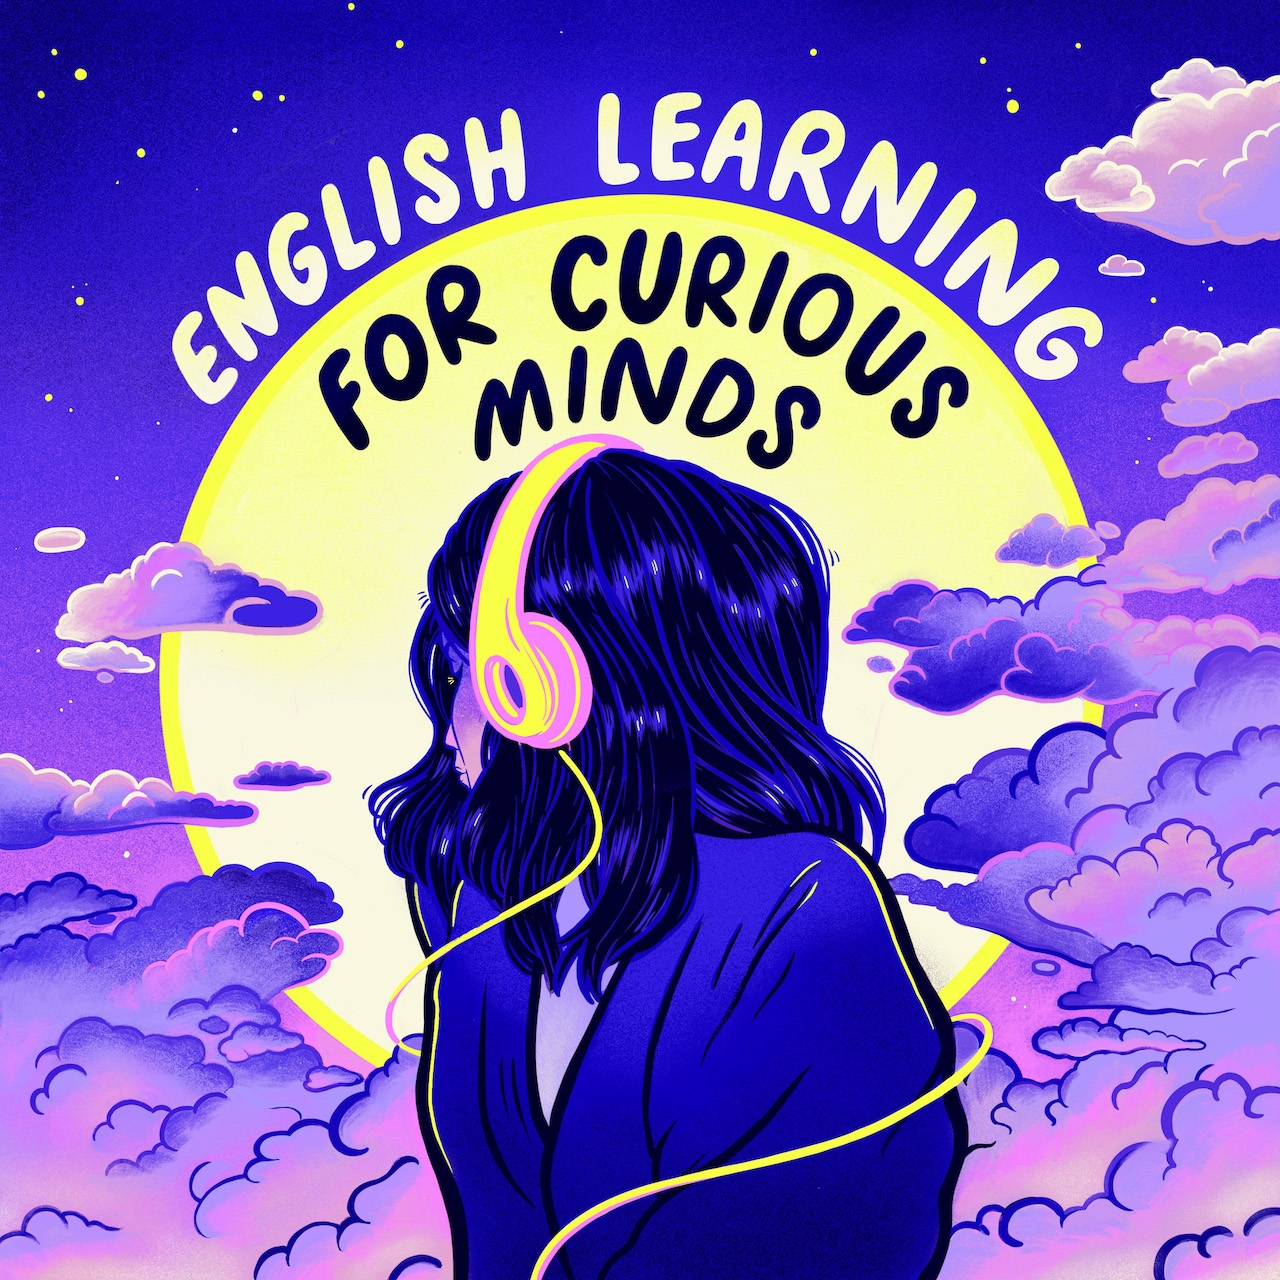 English Learning for Curious Minds Podcast Artwork